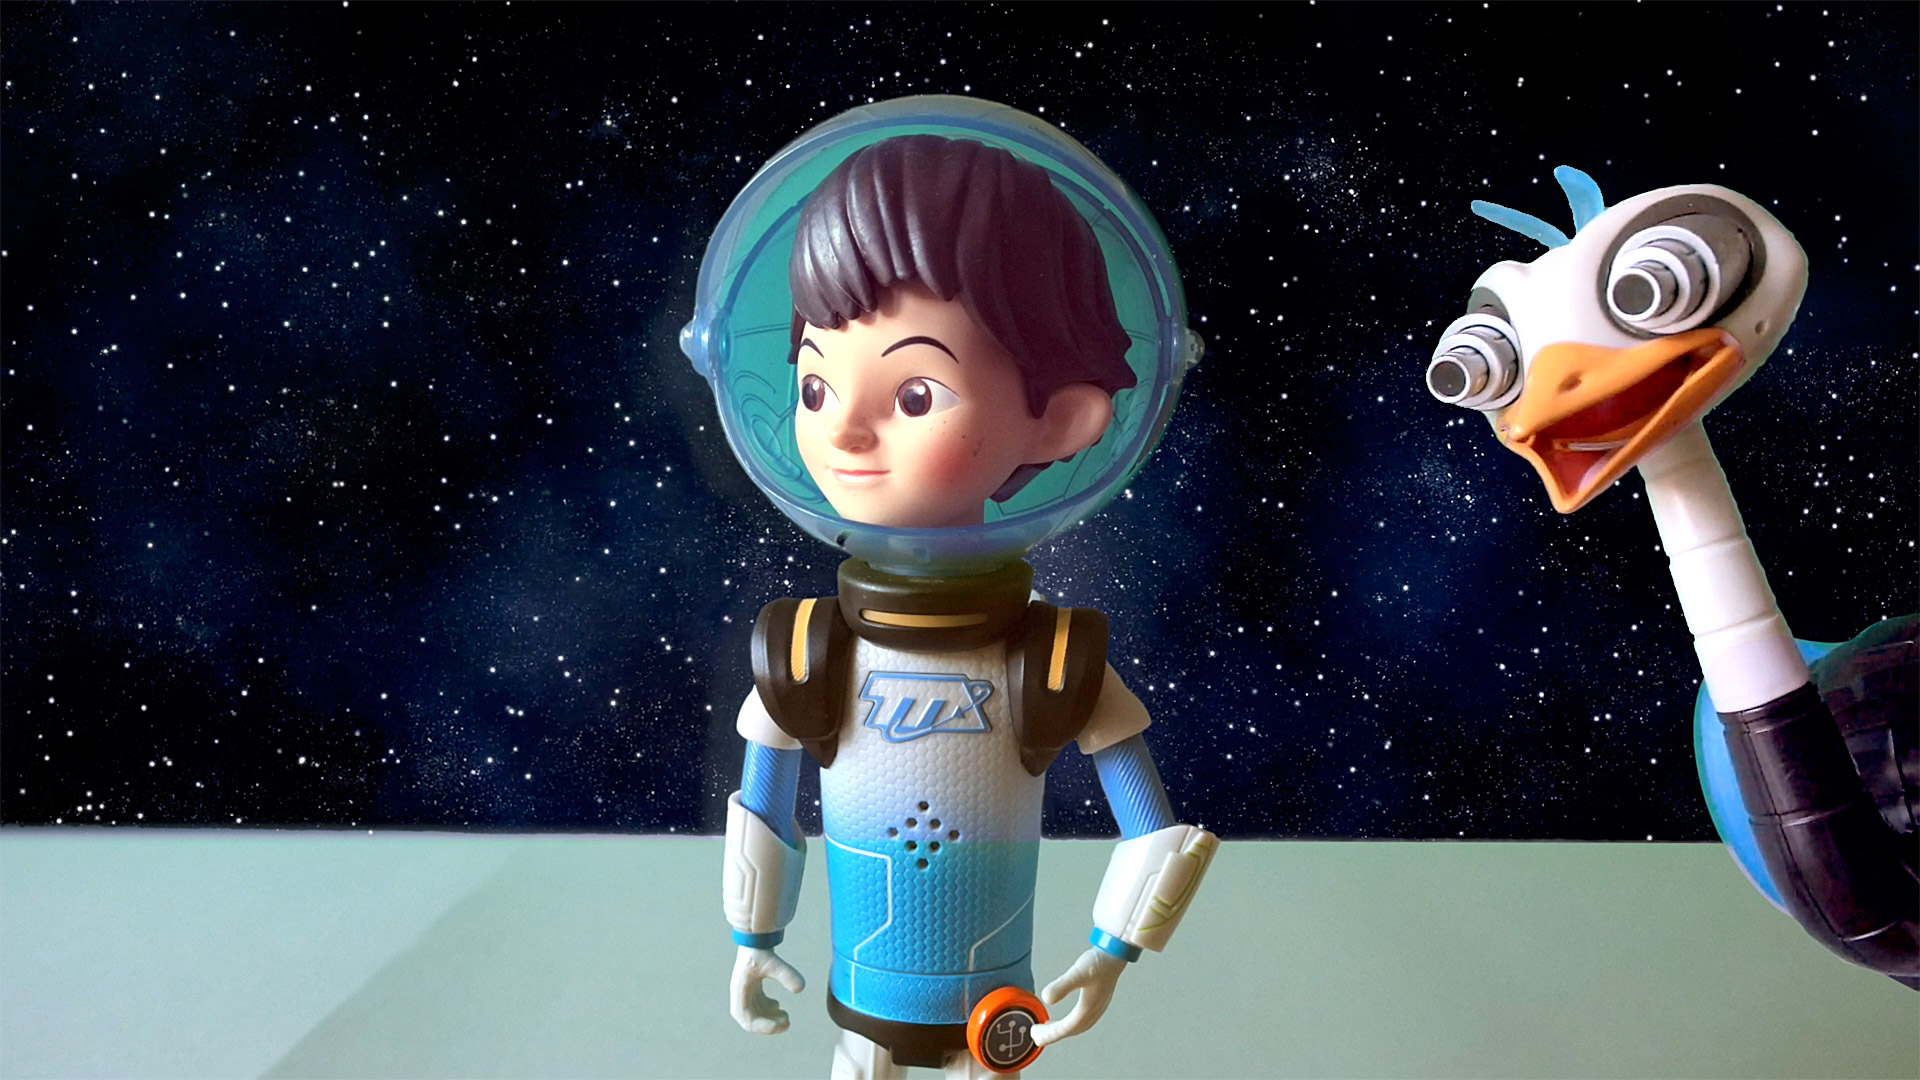 MERC HIDES FROM MILES !! - Miles from Tomorrowland Toys, Robot Space Bird